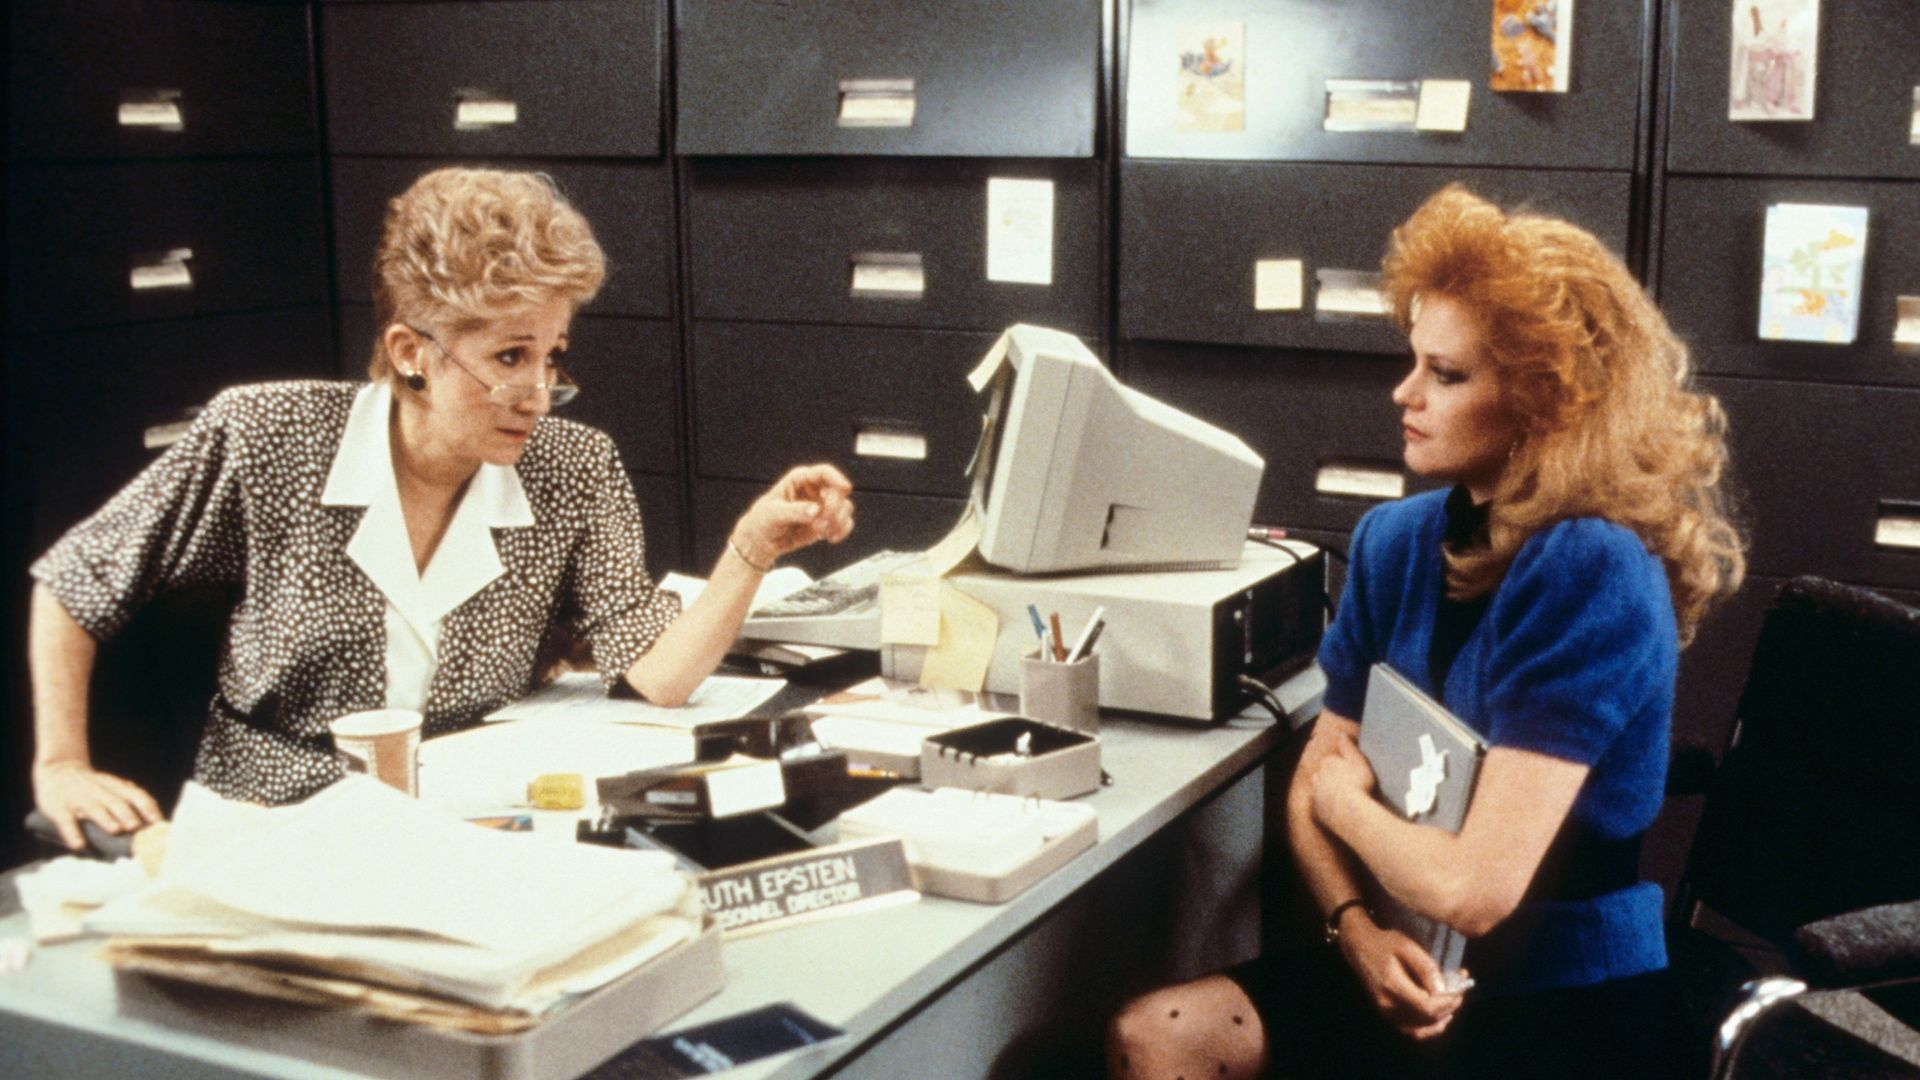 WORKING GIRL, from left: Olympia Dukakis, Joan Cusack, 1988.